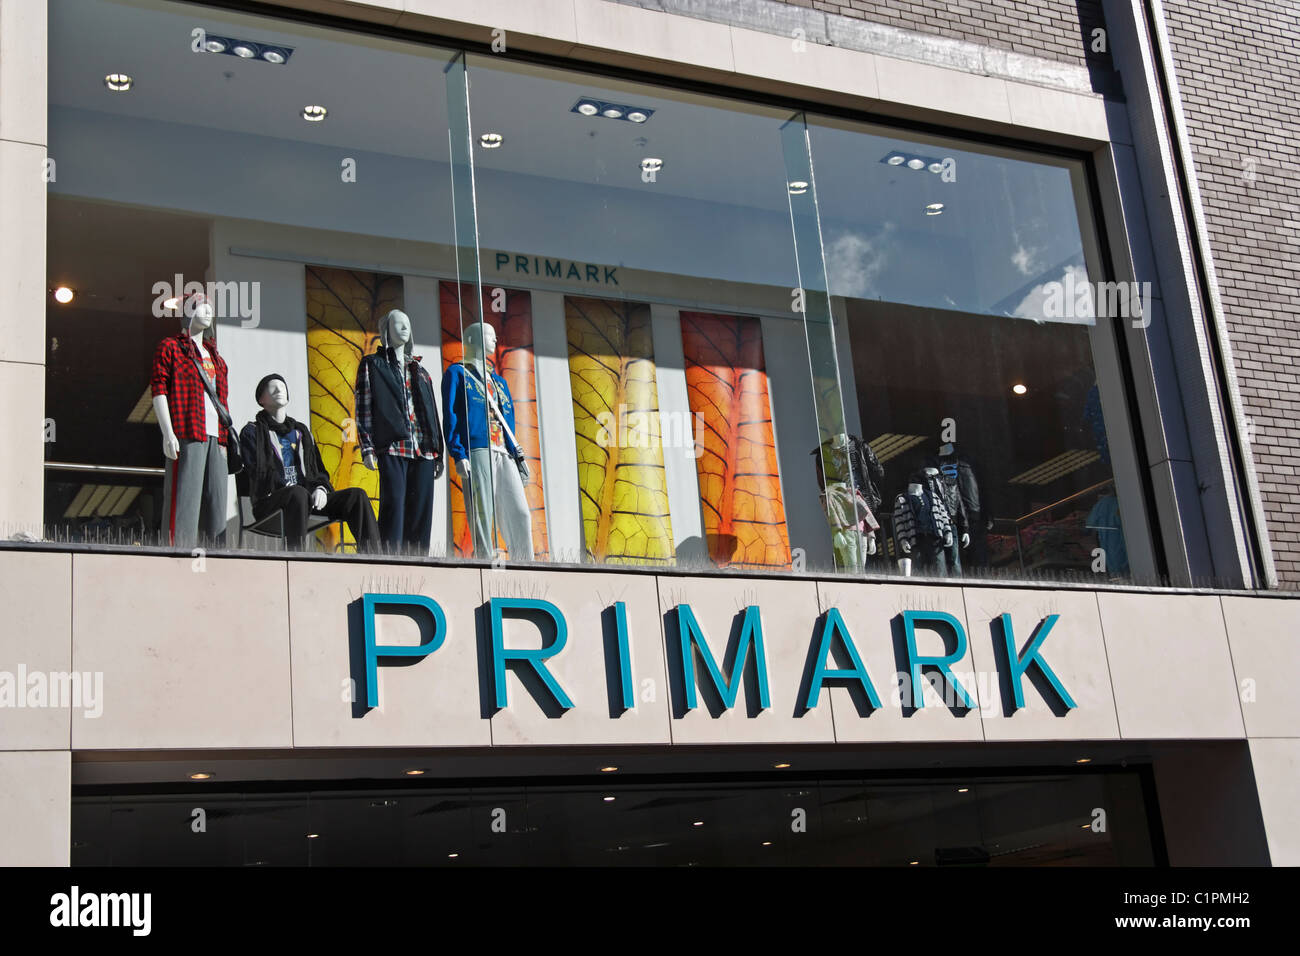 Primark store in Newcastle upon Tyne, England, UK - Stock Image